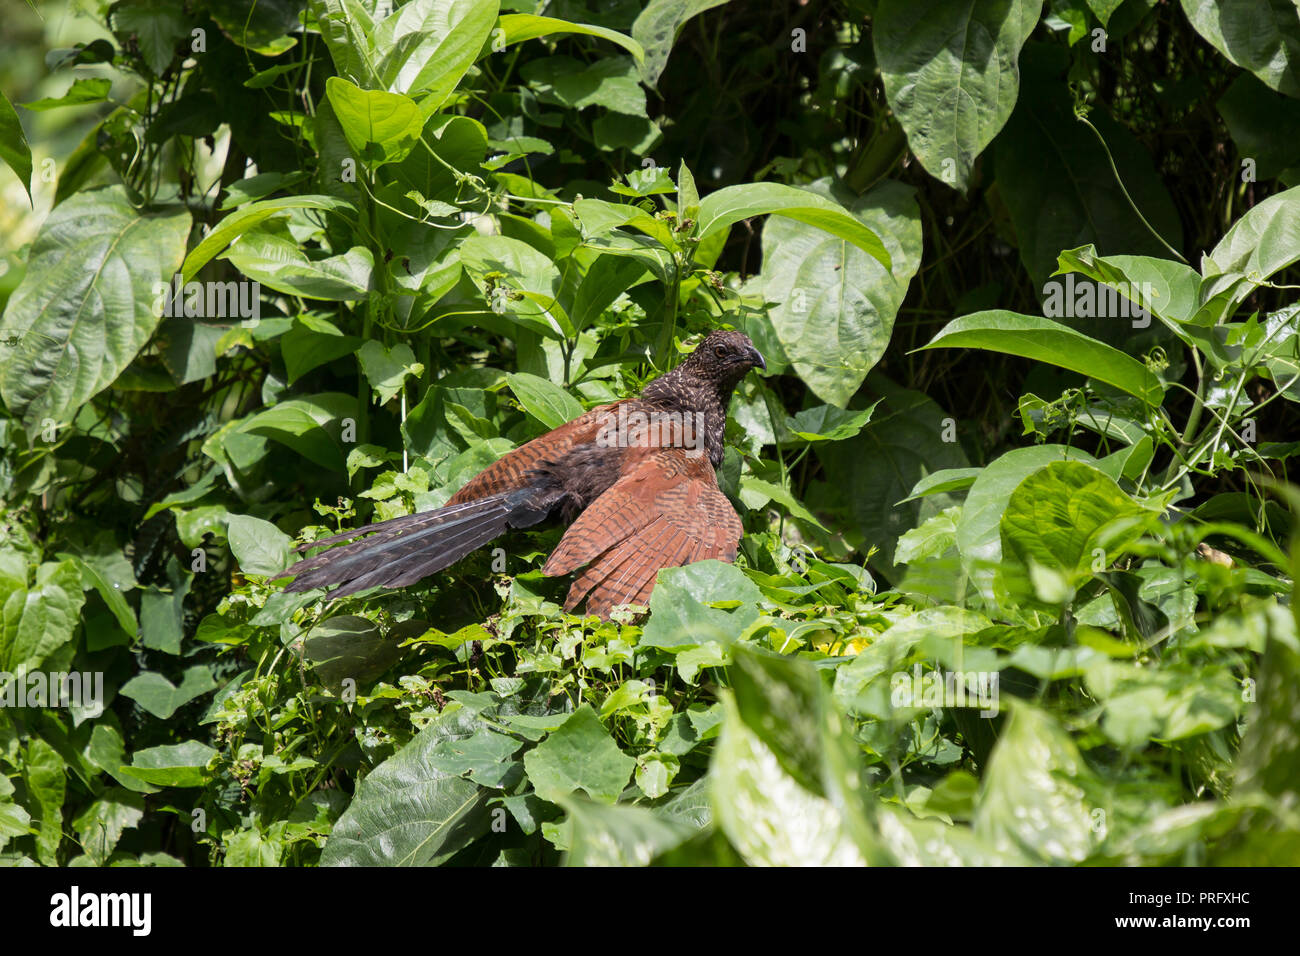 Greater coucal (Centropus sinensis). Bandhavgarh National Park. Madhya Pradesh. India. - Stock Image